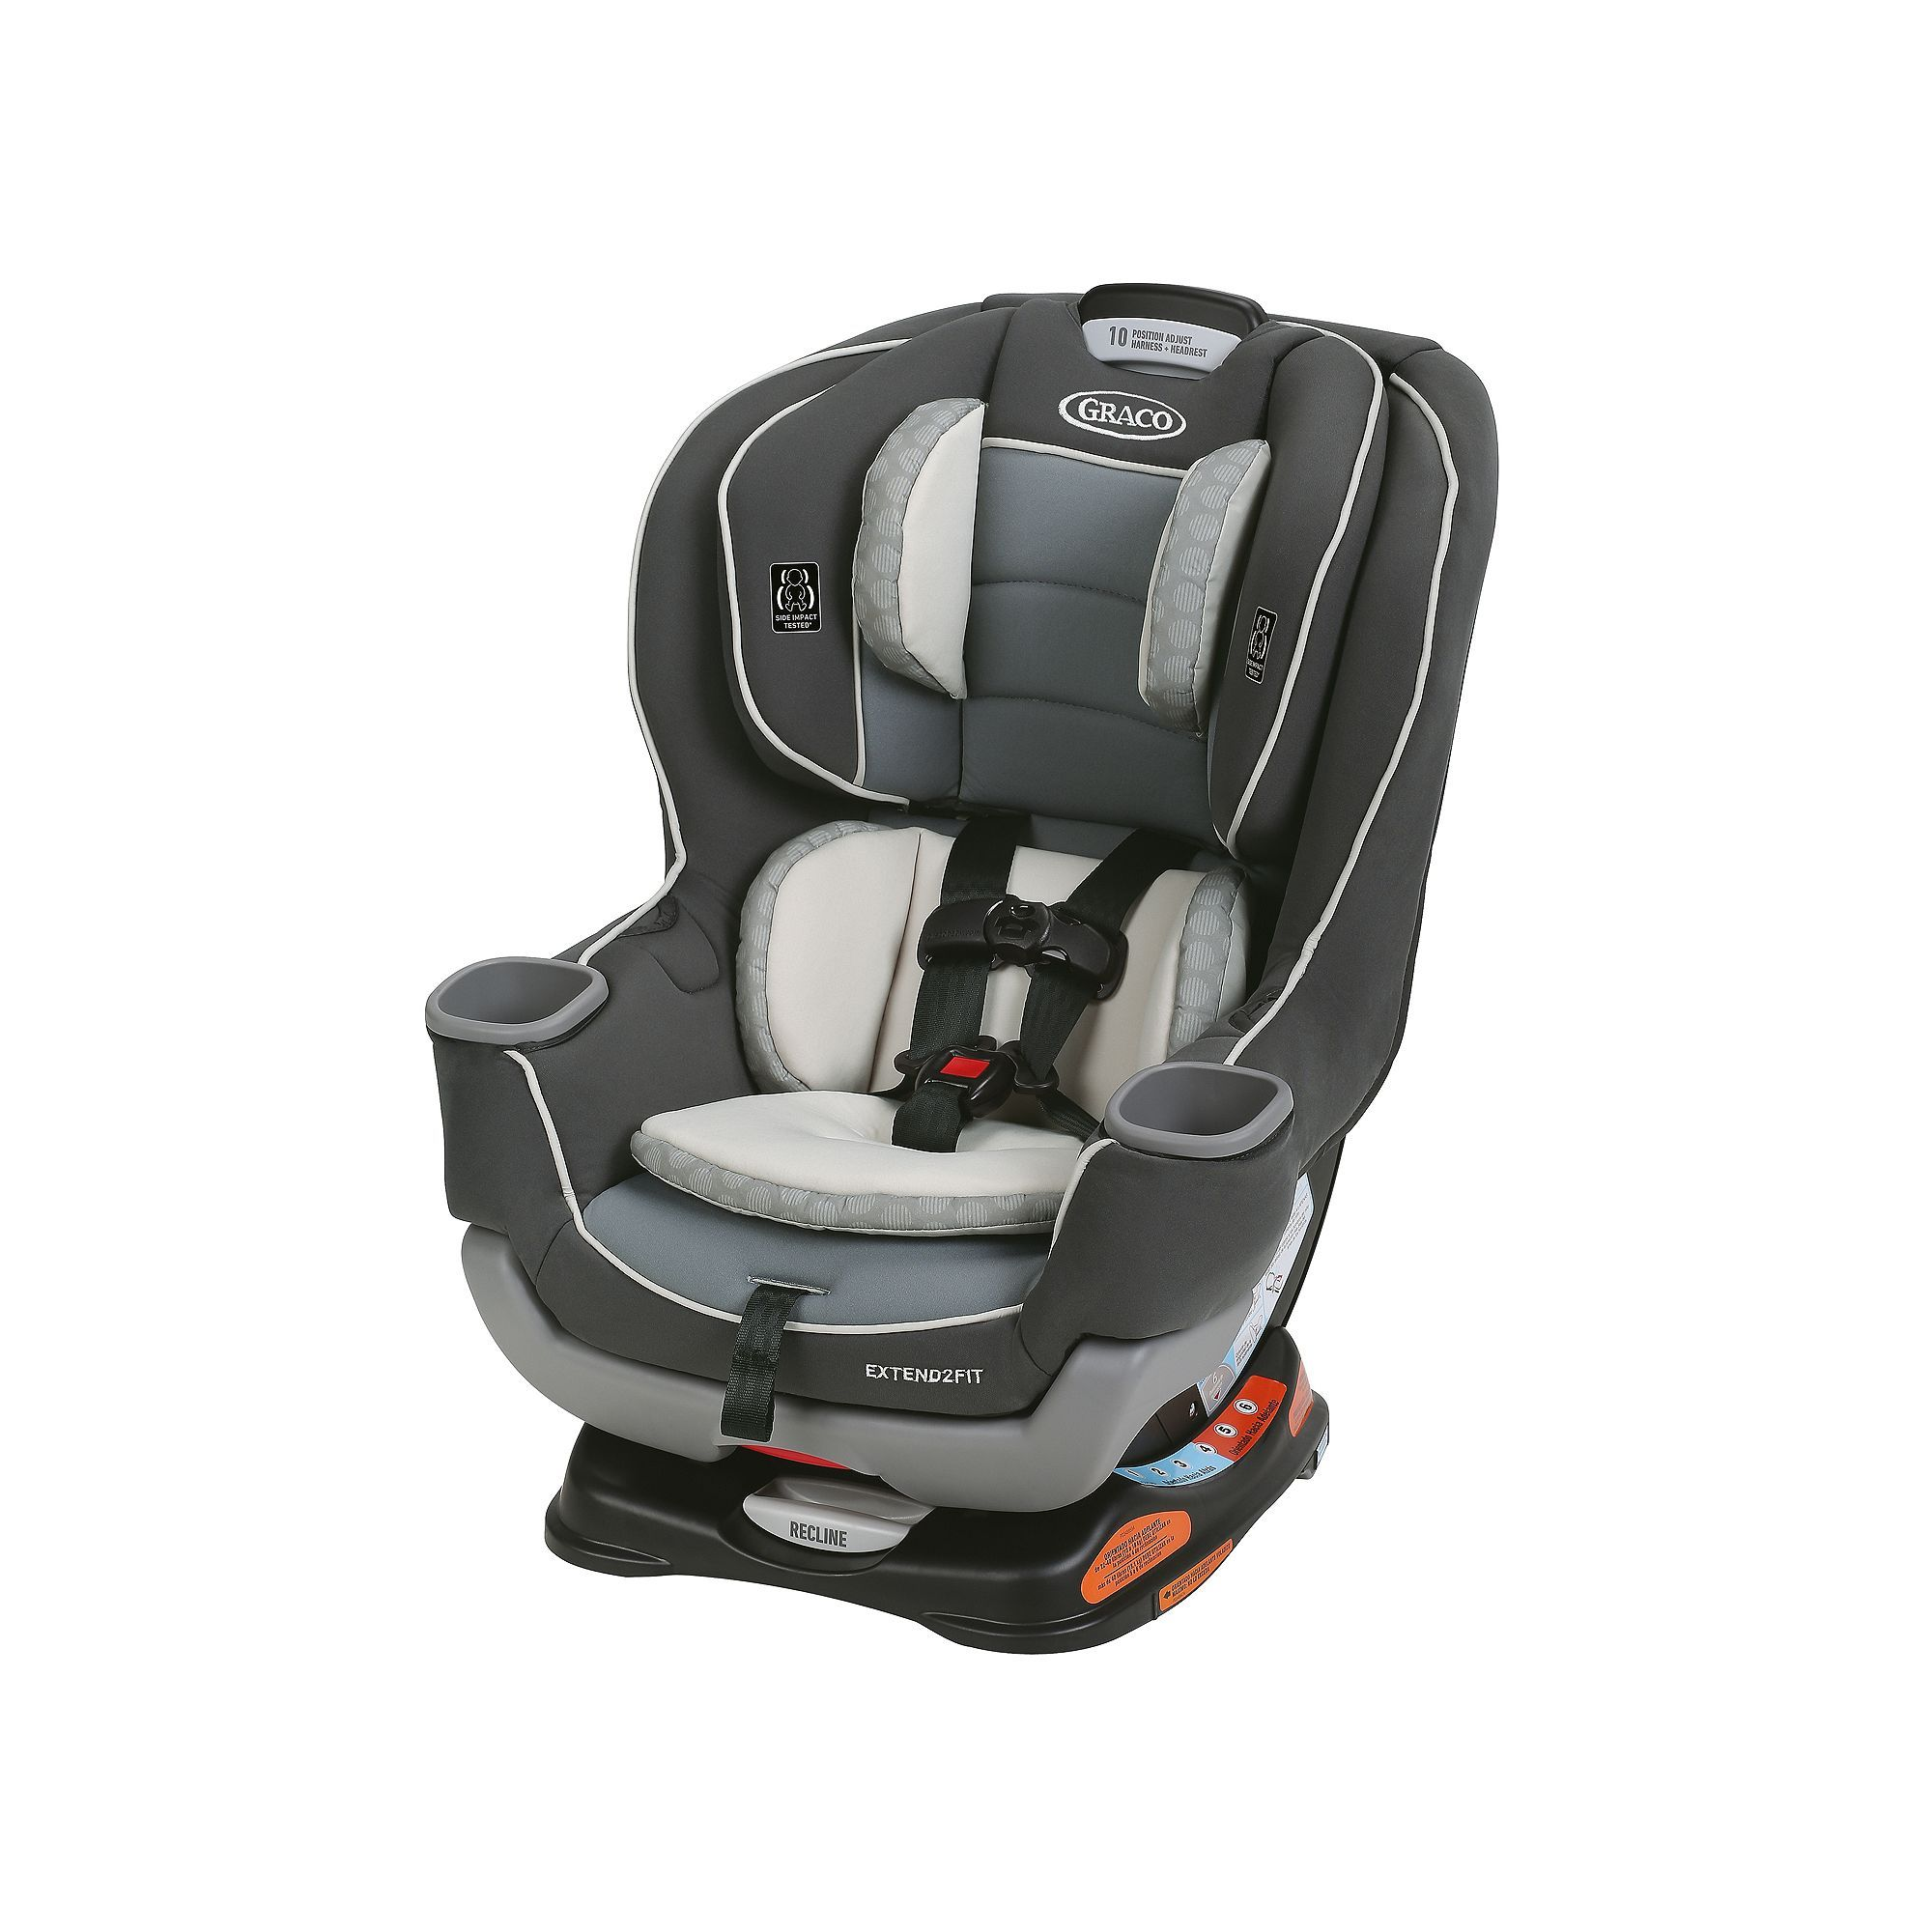 Graco extend2fit convertible car seat best convertible